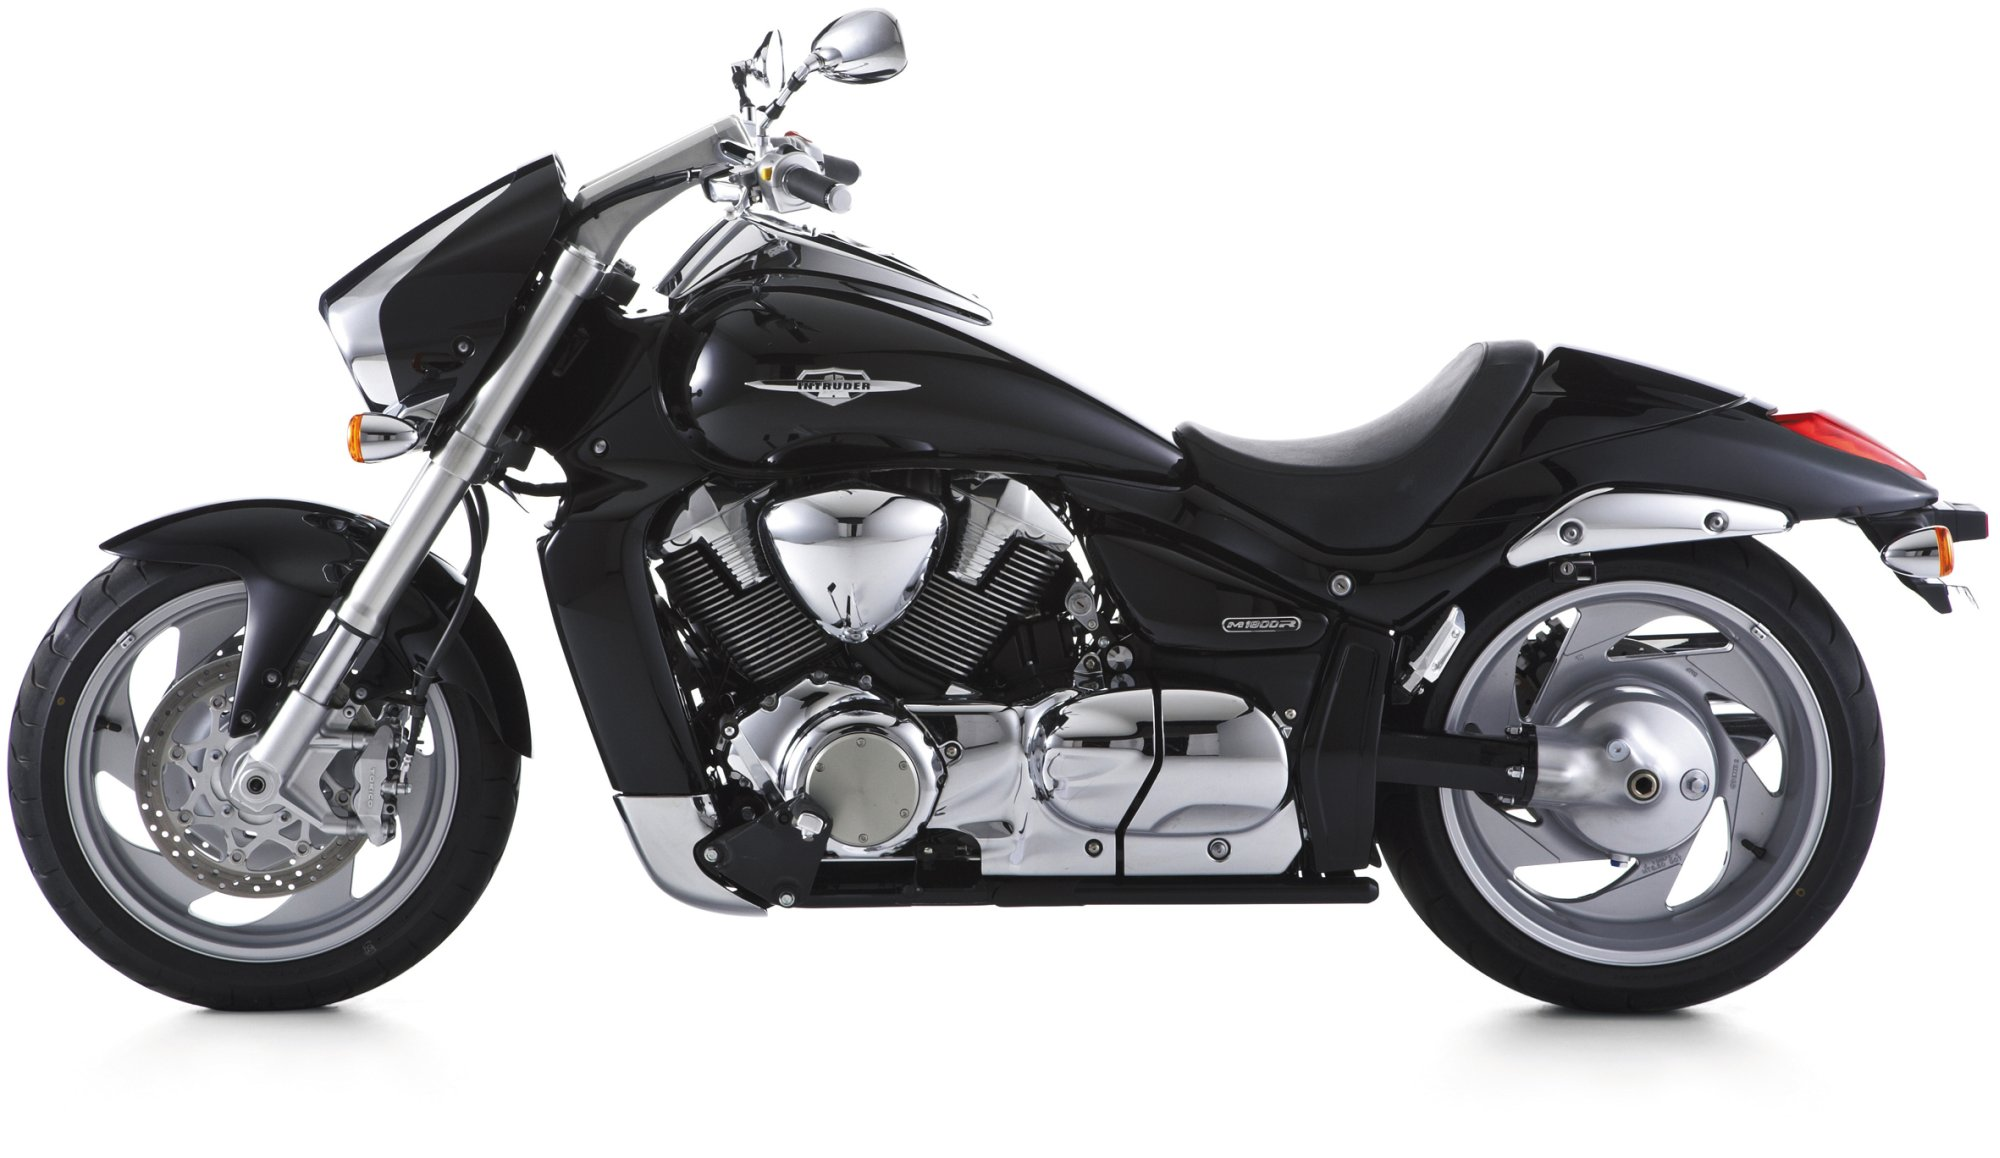 suzuki intruder m1800r all technical data of the model. Black Bedroom Furniture Sets. Home Design Ideas